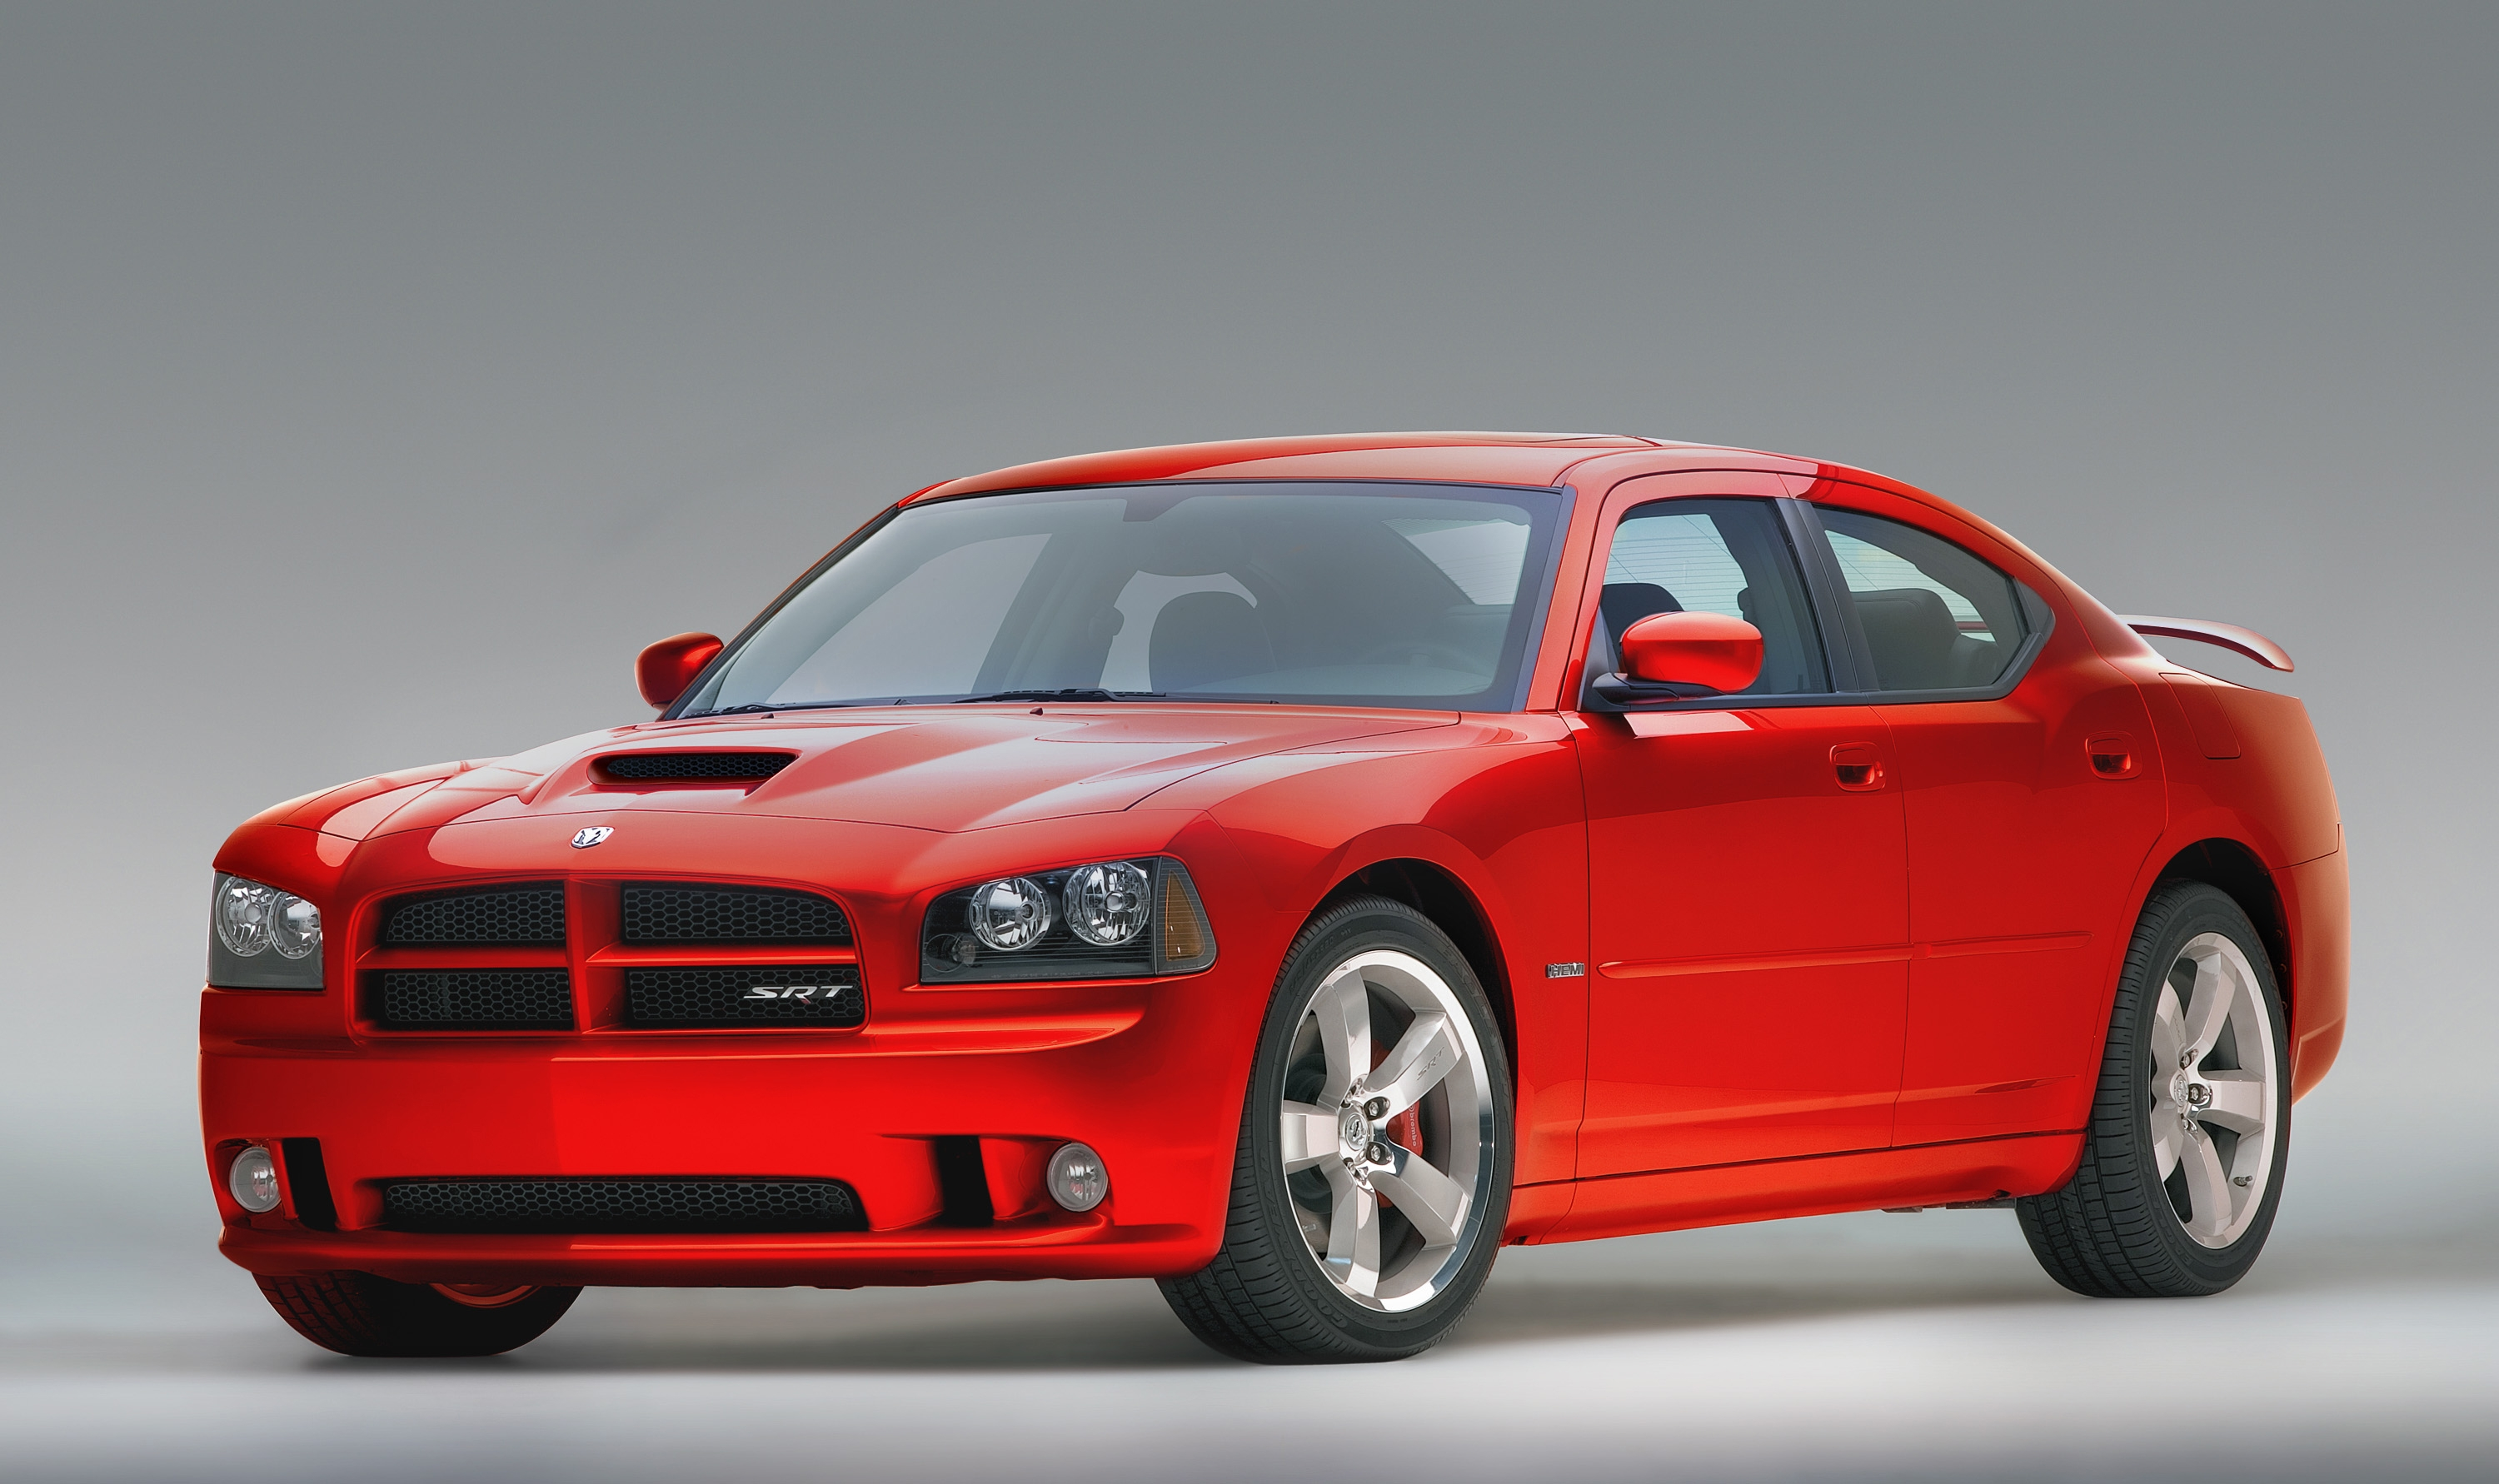 Red Dodge Charger >> 2008 DODGE CHARGER - Image #13